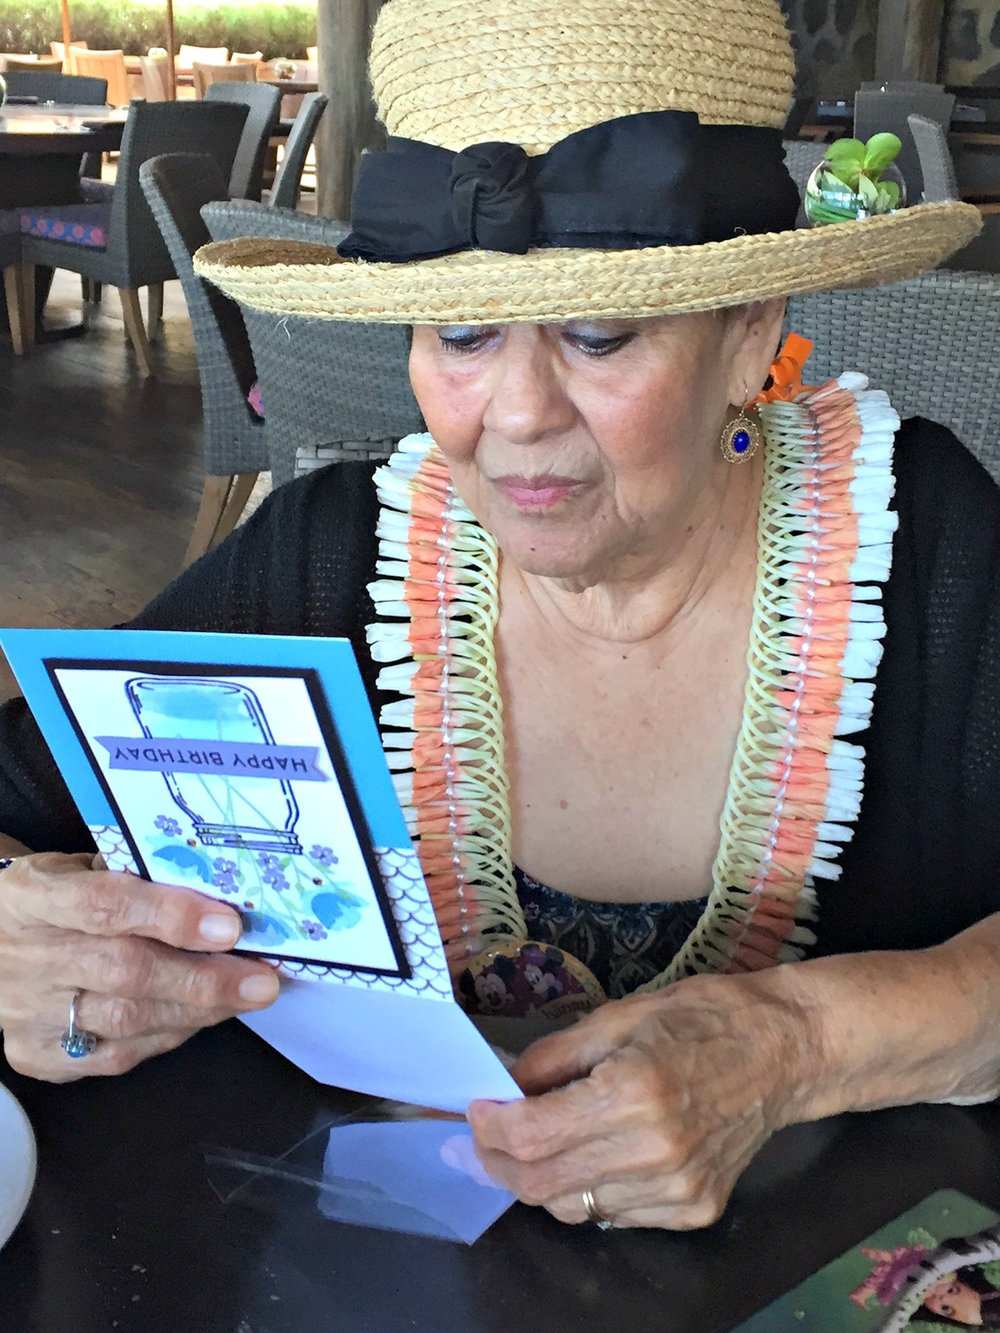 Mom reads her birthday card - www.stampedwithaloha.com